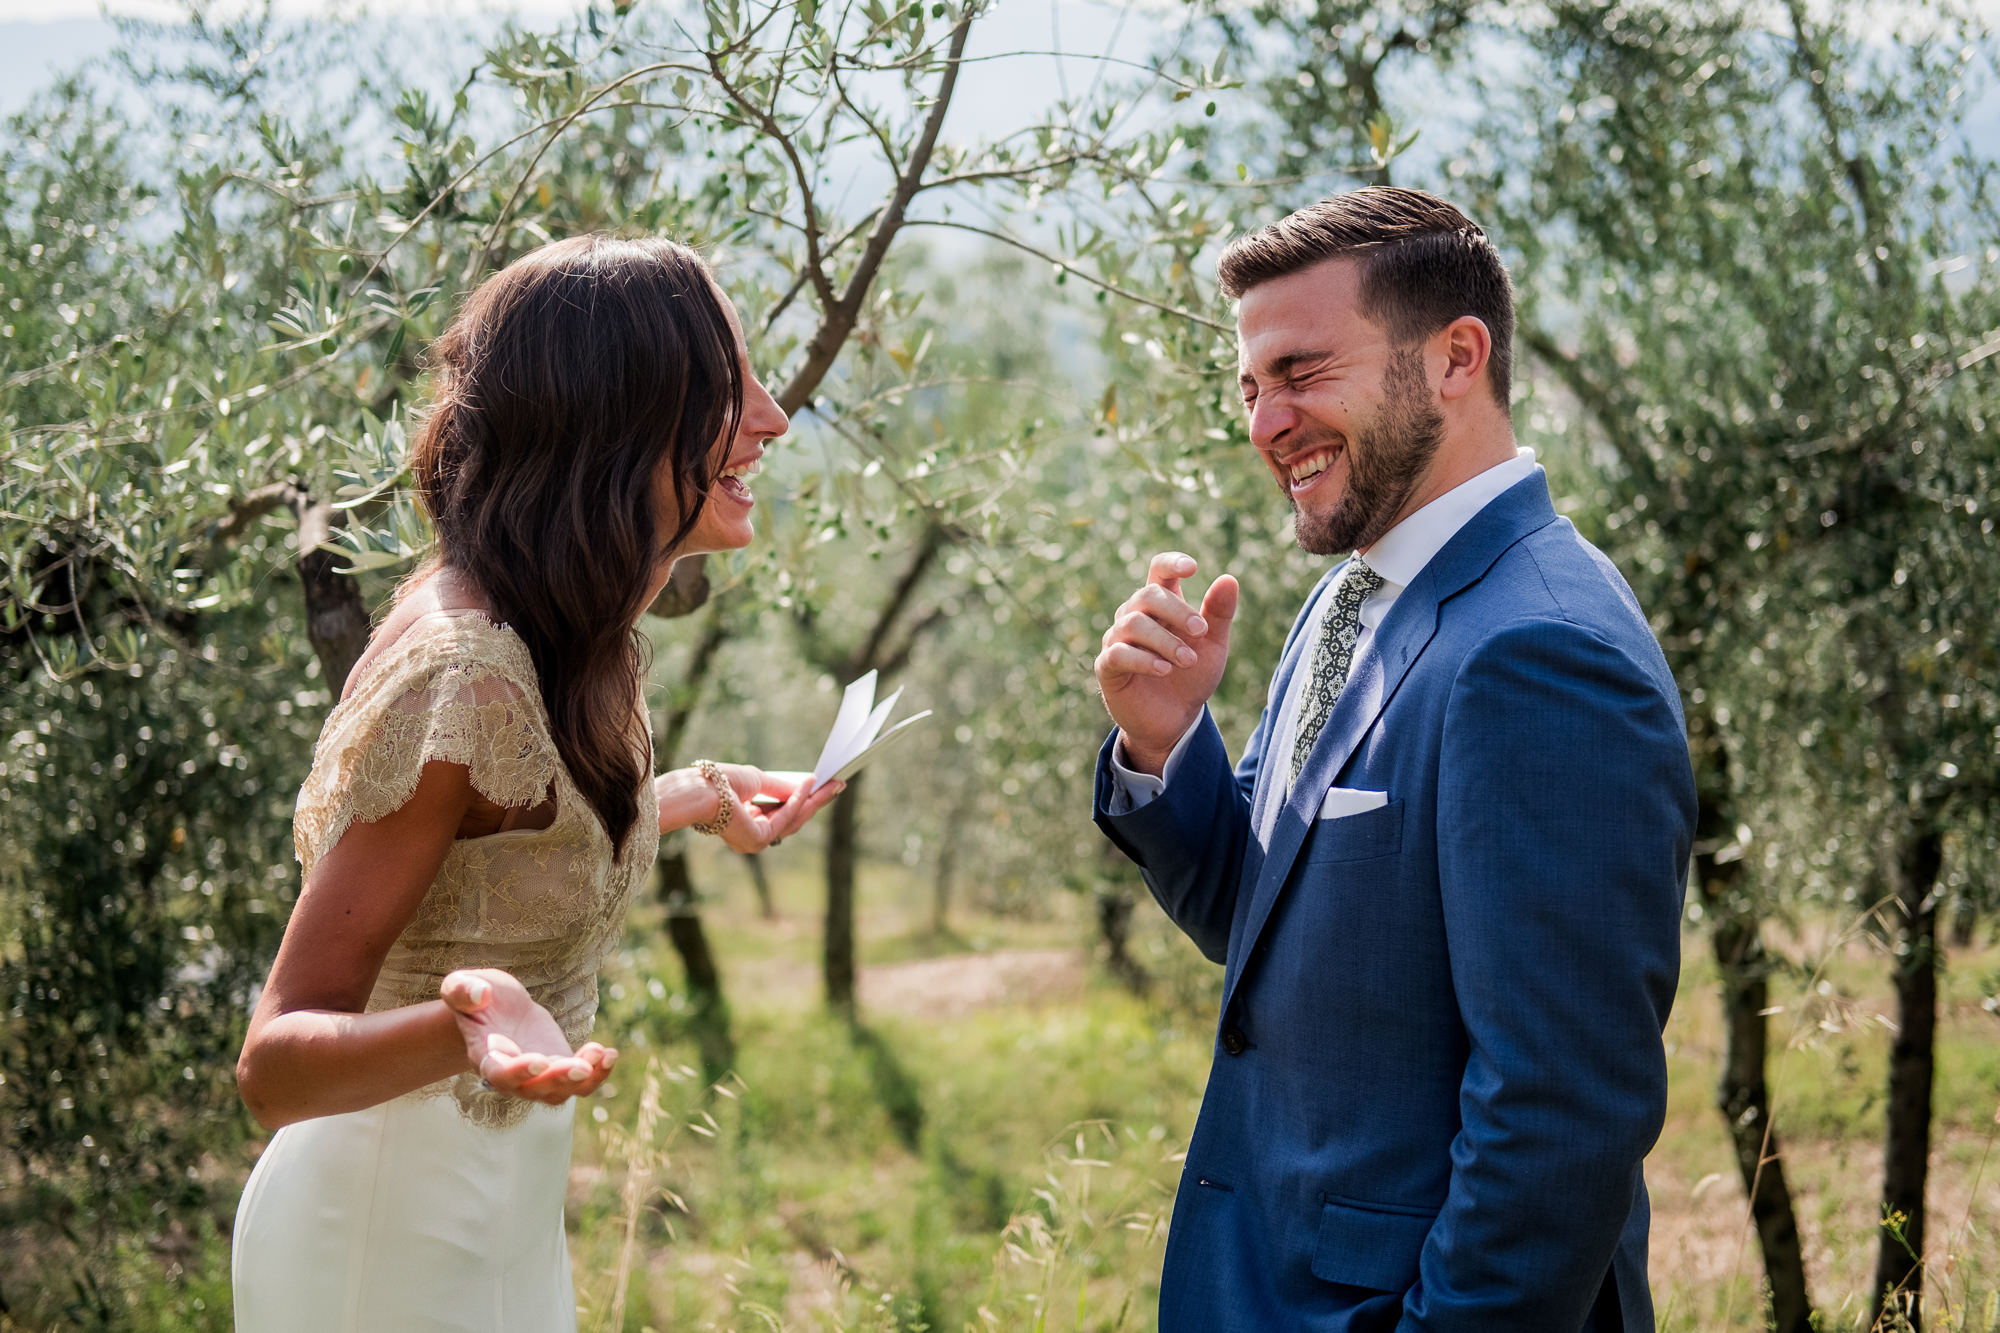 Groom in blue suit laughs as bride reads vows photo by Nordica Photography